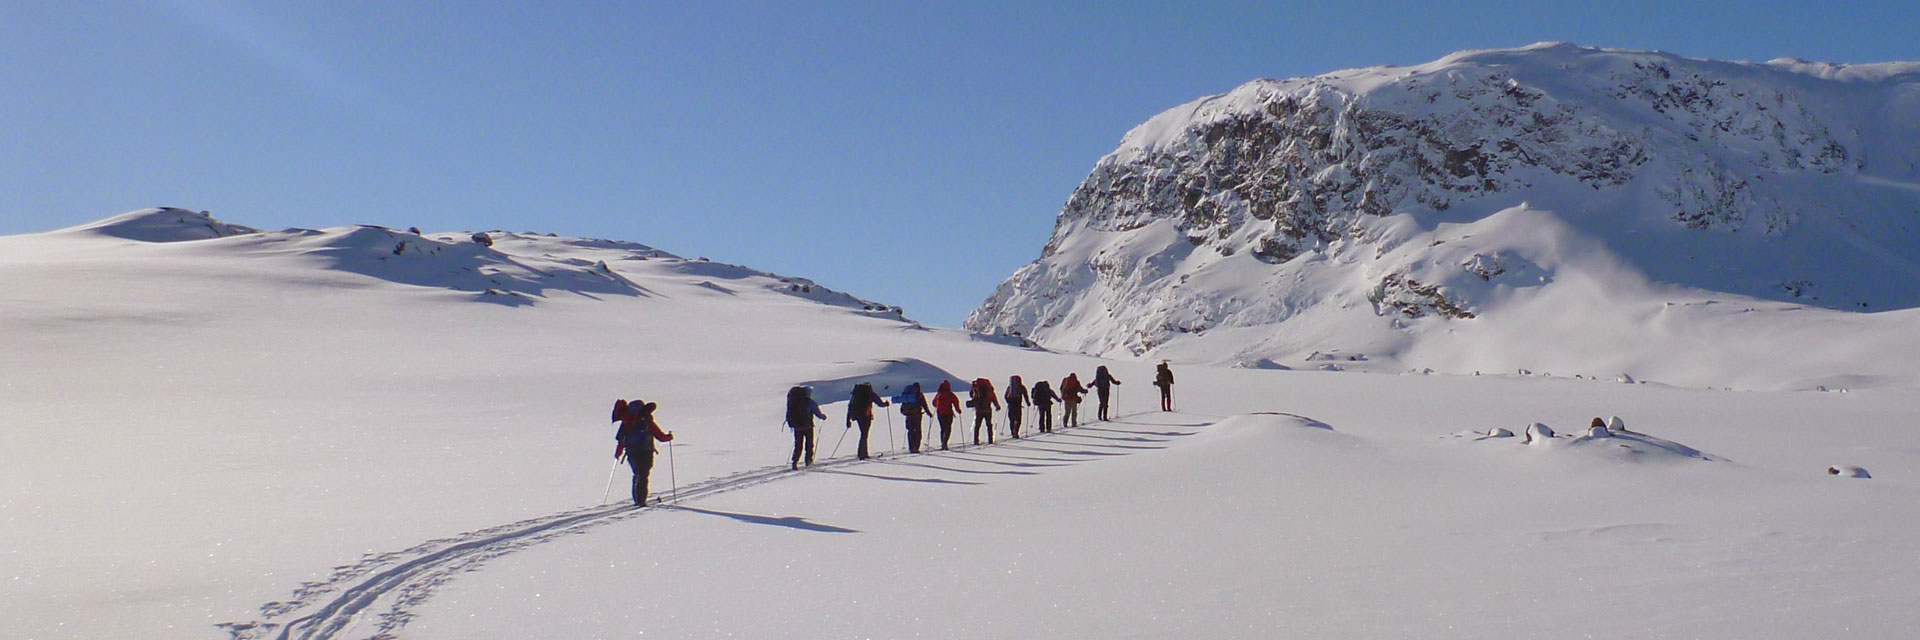 Ski Touring and Cross Country Skiing Holidays